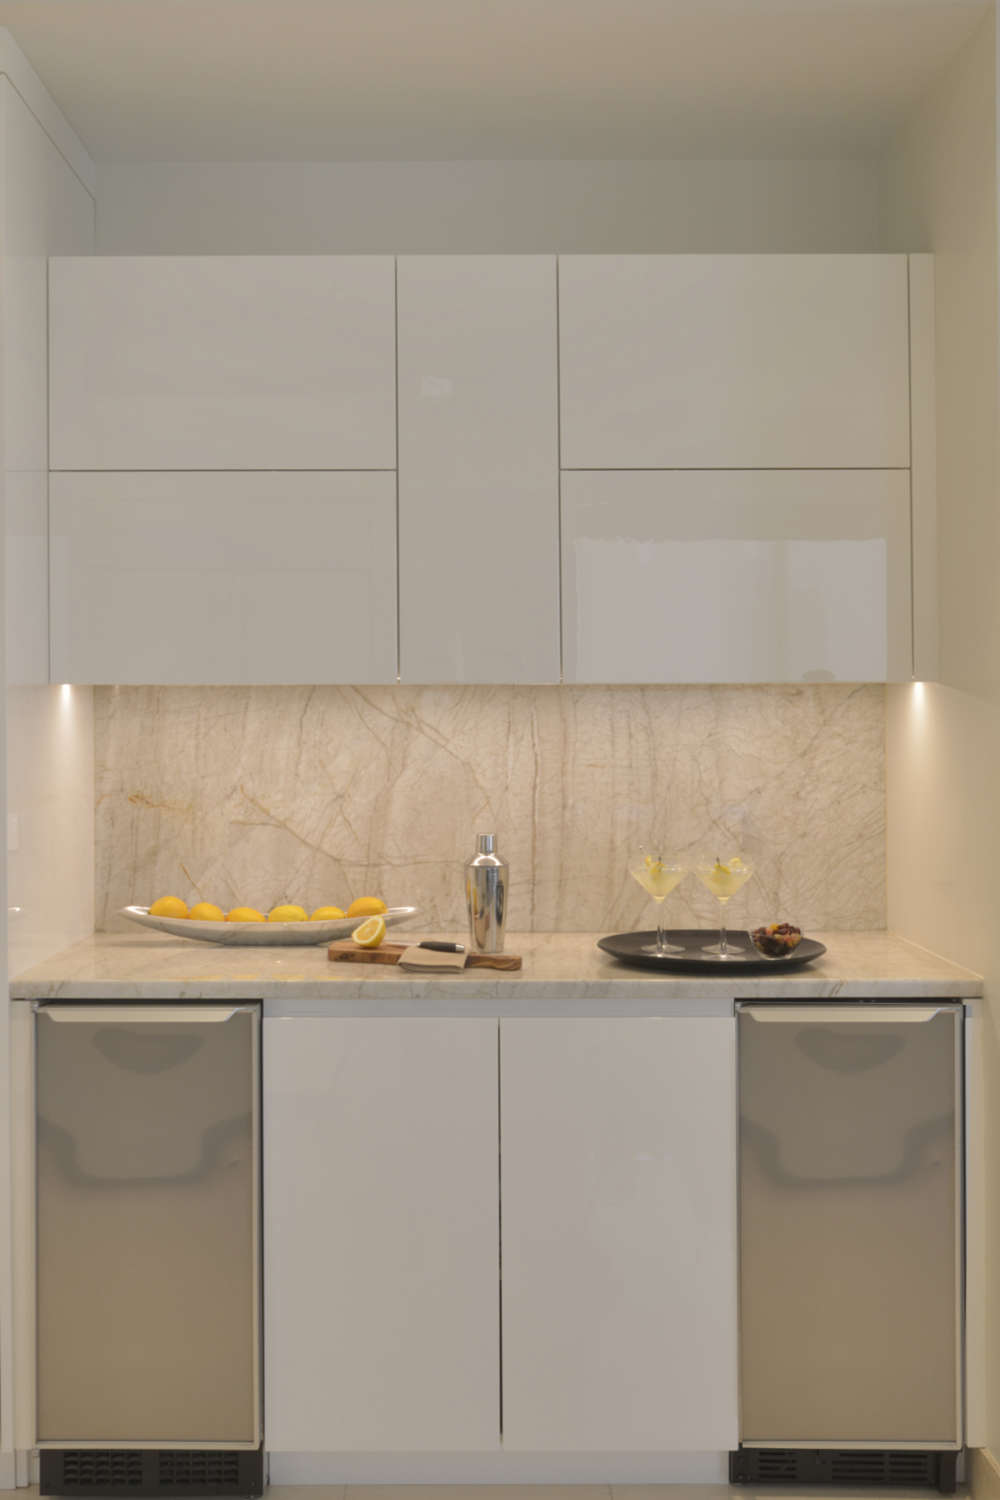 Bar area of contemporary kitchen features high gloss white, flat panel fully custom Artcraft cabinetry and light marble with veining. Design by Tabitha Tepe of Bilotta Kitchens.